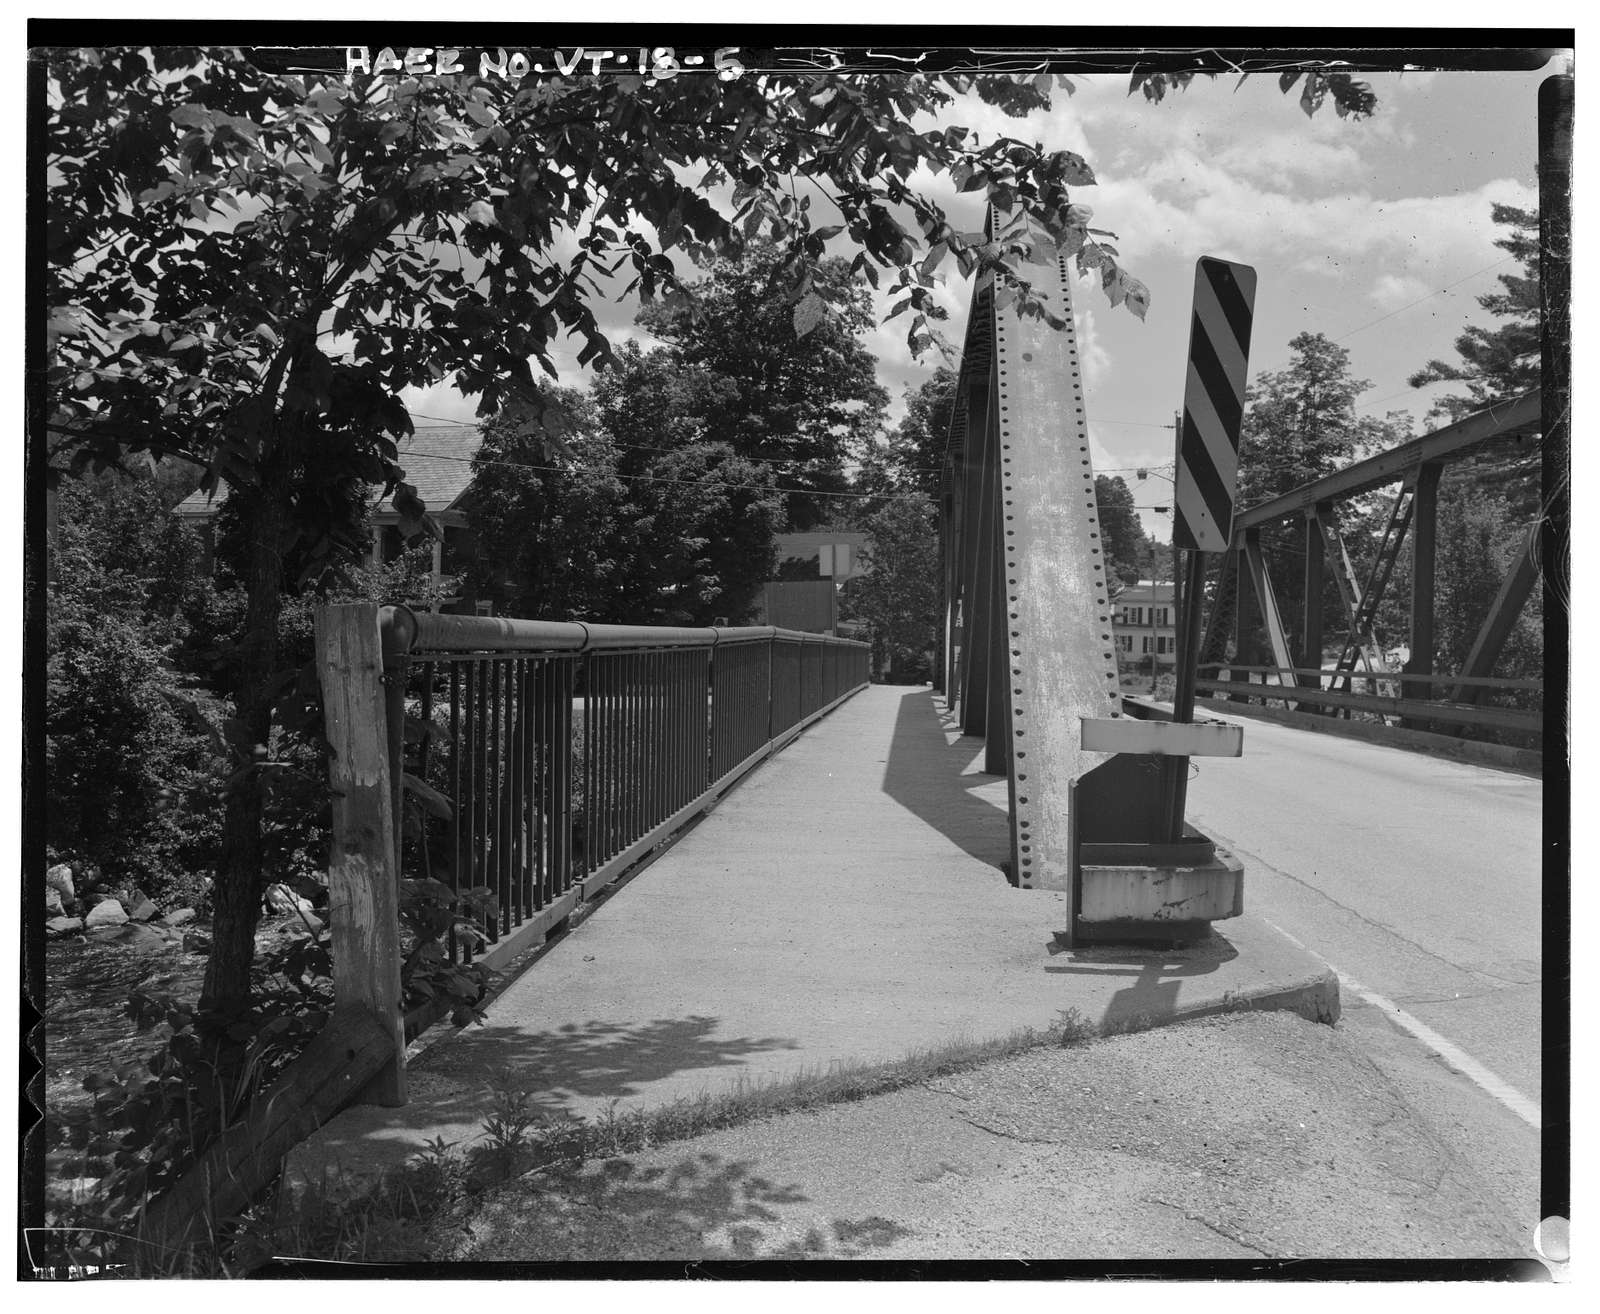 Cuttingsville Bridge, Spanning Mill River at State Route 103, Shrewsbury, Rutland County, VT